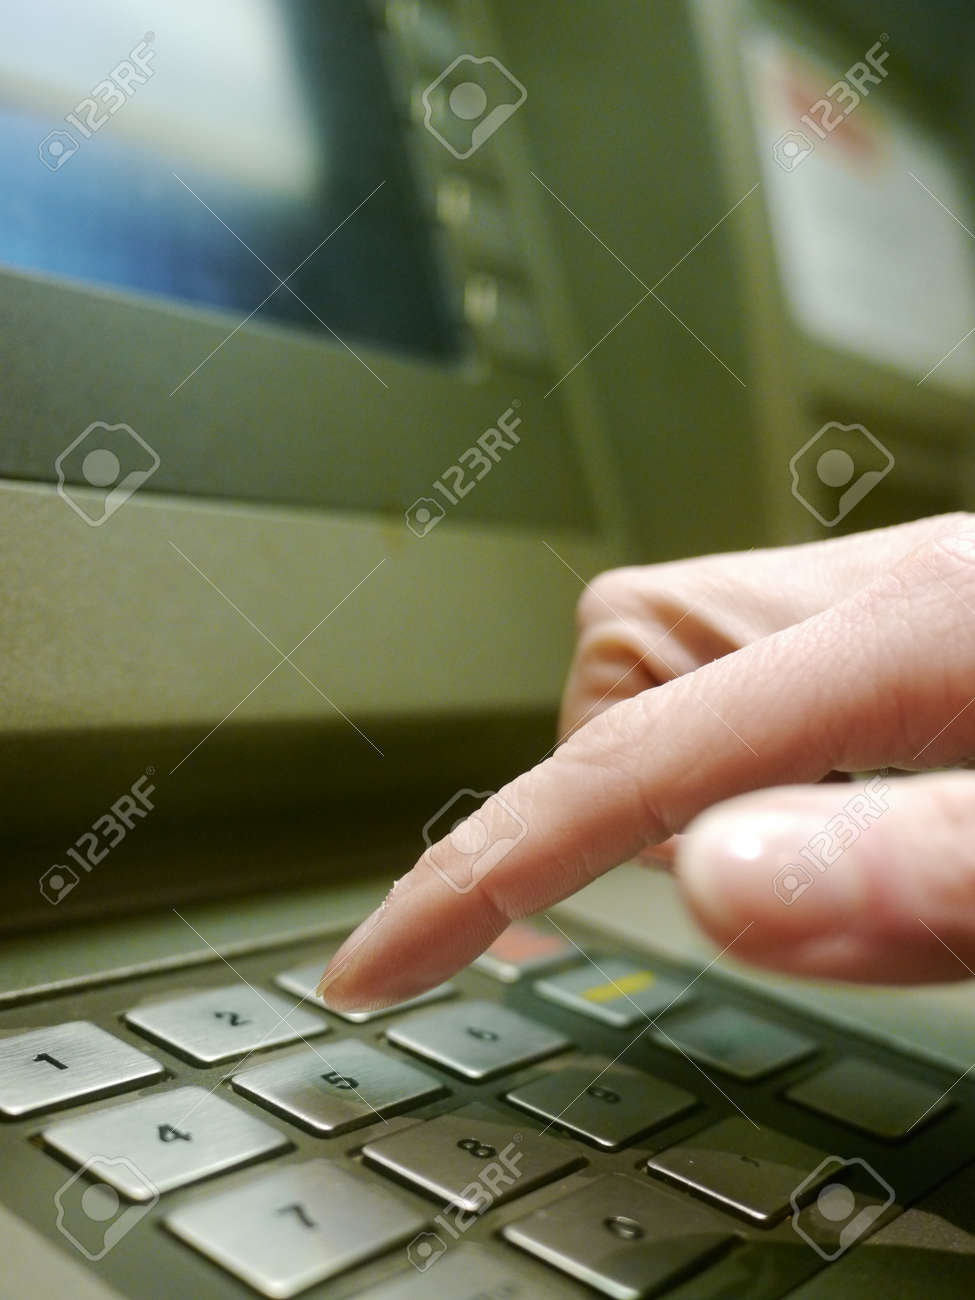 Finger using automatic teller keypad to enter pin number Stock Photo - 9143863